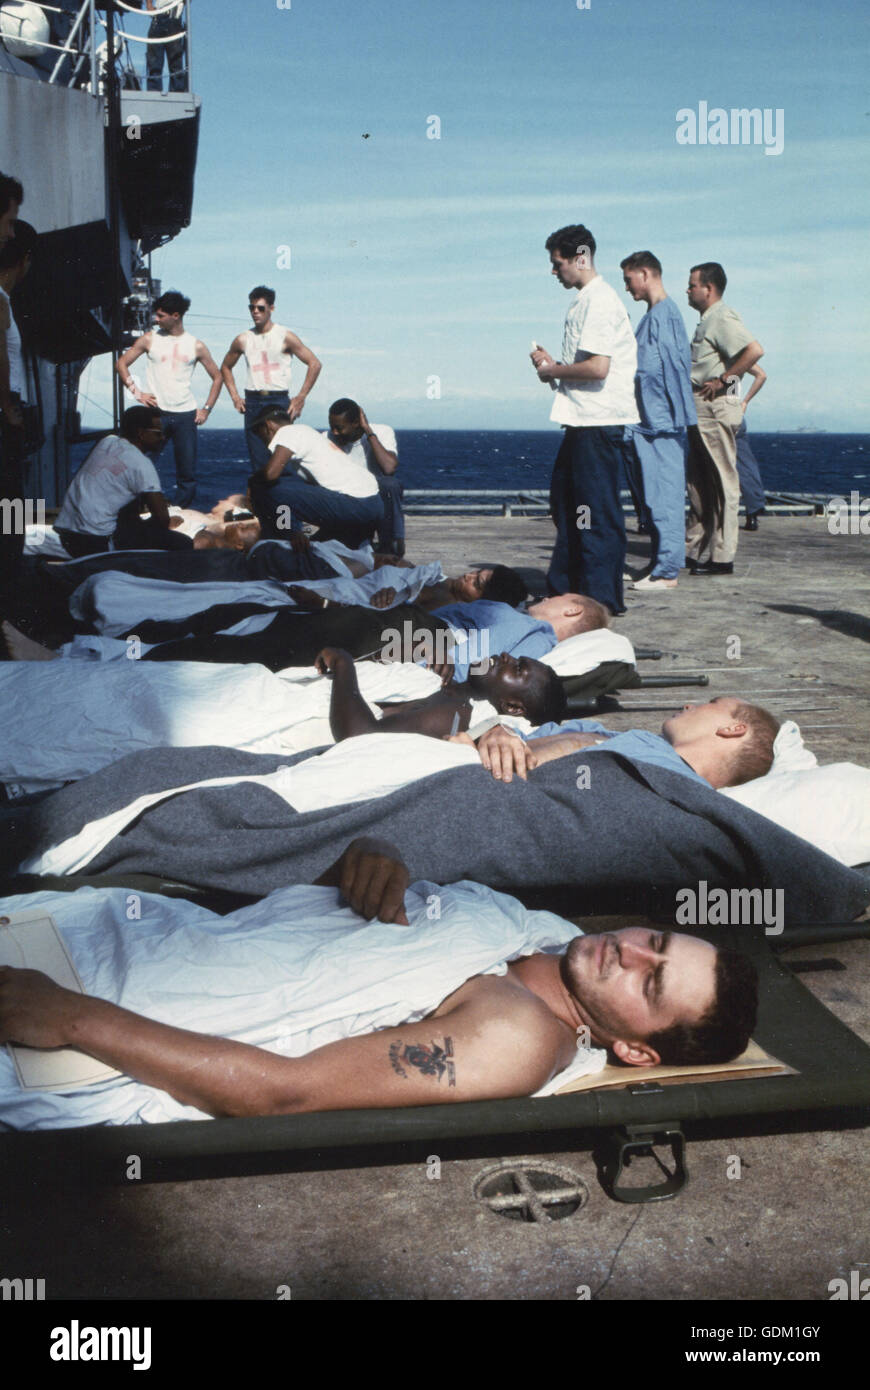 Medical evacuation patients on the deck of the amphibious assault ship USS TRIPOLI await transfer to the 22nd Casualty - Stock Image